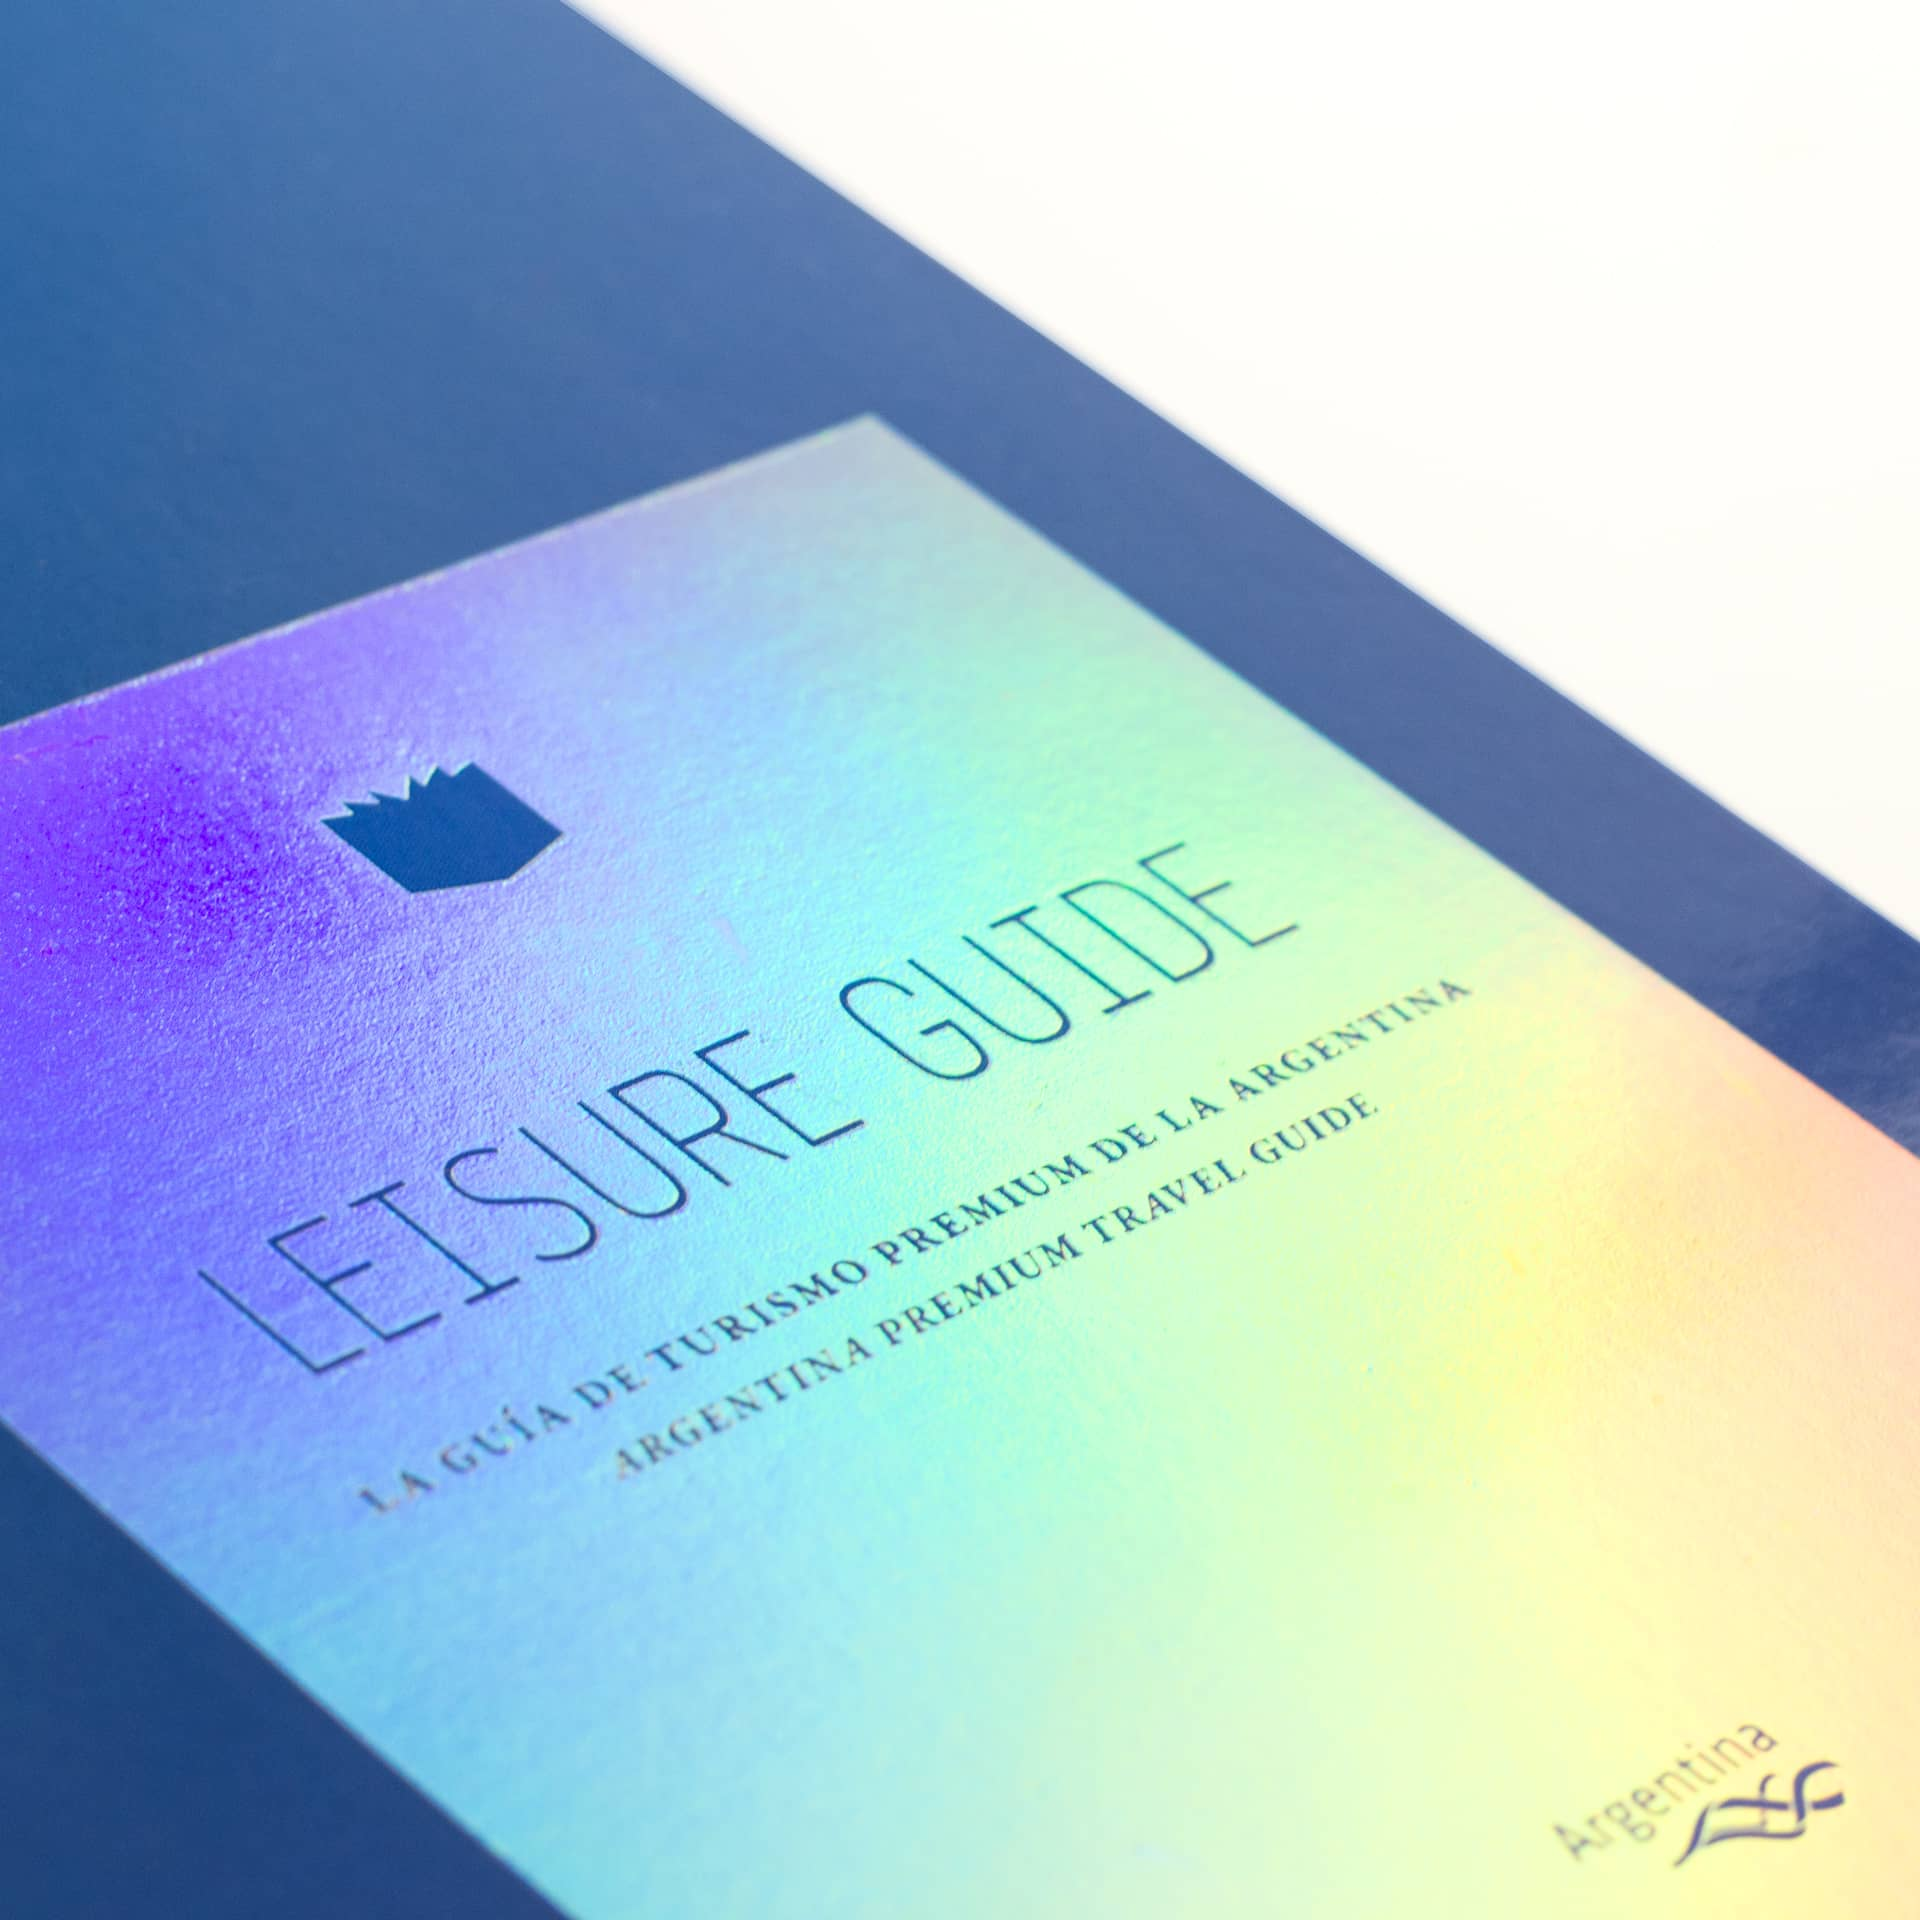 Leisure Guide 2015. Name. Design Agency.